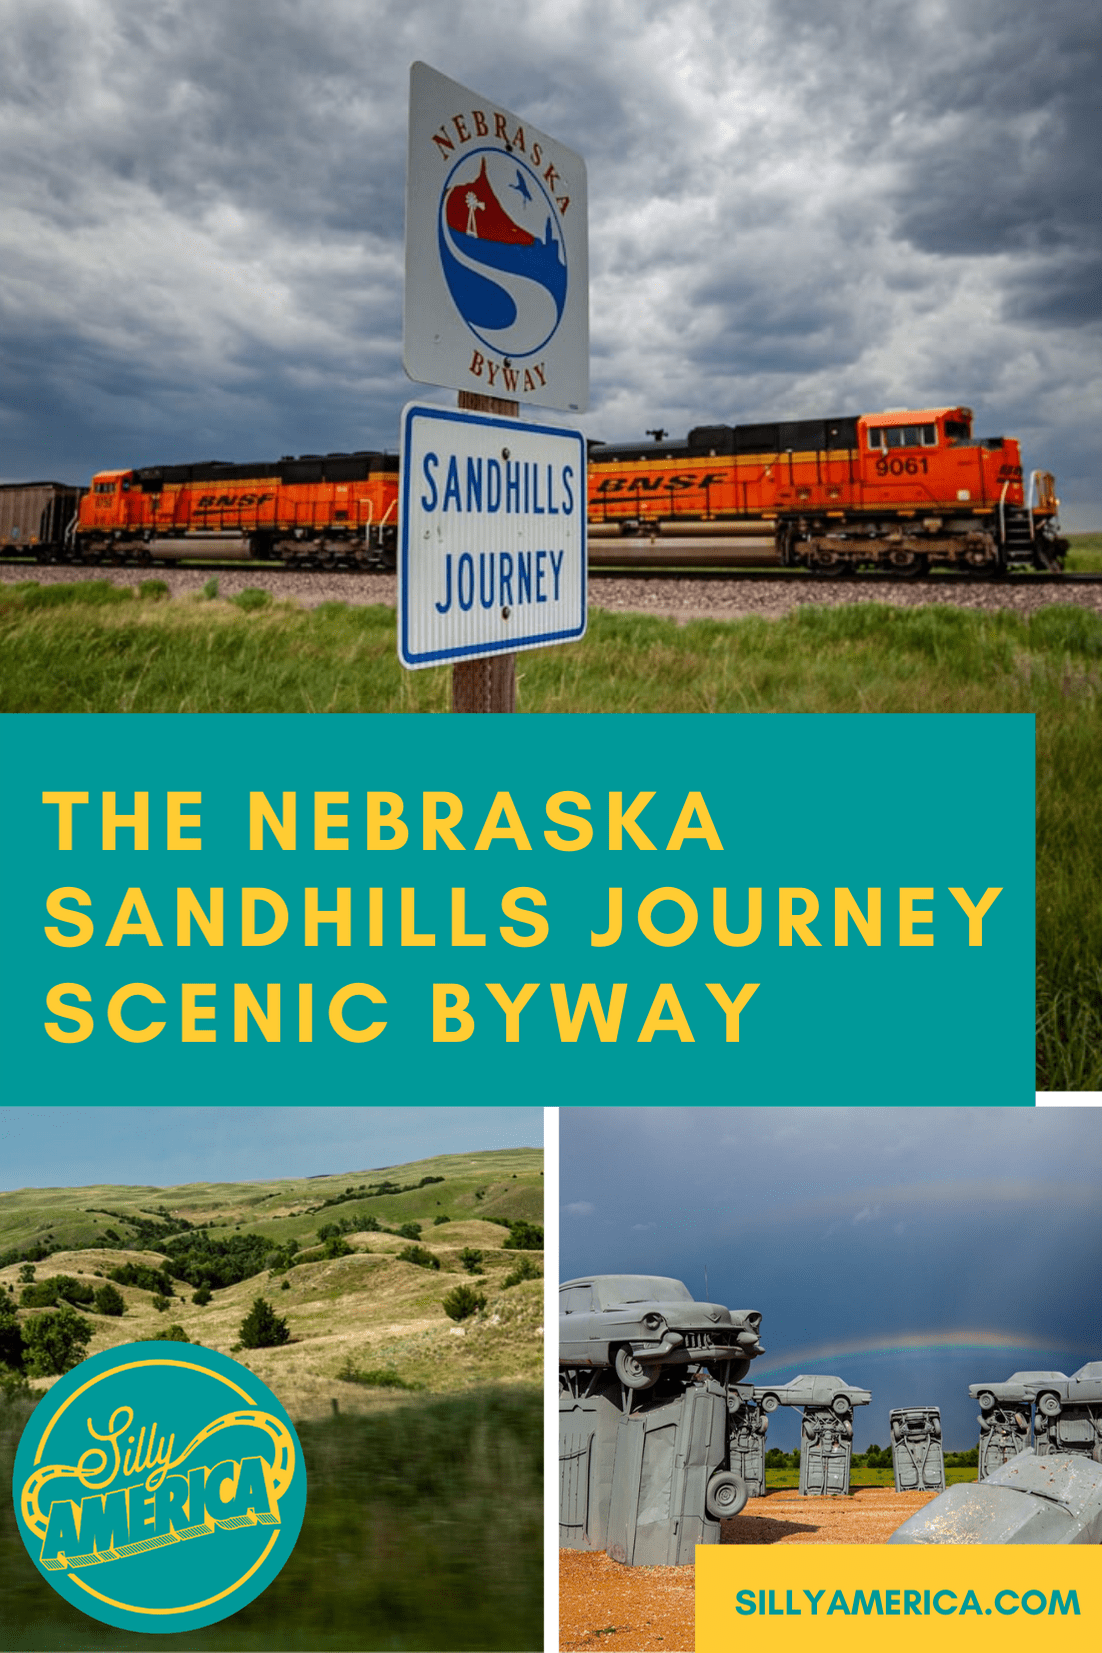 The Sandhills Journey Scenic Byway is a 272-mile road trip that takes you through some of the most breathtaking landscapes in Nebraska. The road, also known as Nebraska Highway 2, runs from Grand Island on the southeastern end to Alliance on the northwestern end.  #NebraskaRoadsideAttractions #NebraskaRoadsideAttraction #RoadsideAttractions #RoadsideAttraction #RoadTrip #NebraskaRoadTrip #ThingsToDoInNebraska #NebraskaRoadTripWithKids #NebraskaTravelRoadTrips #ThingsToSeeInNebraska